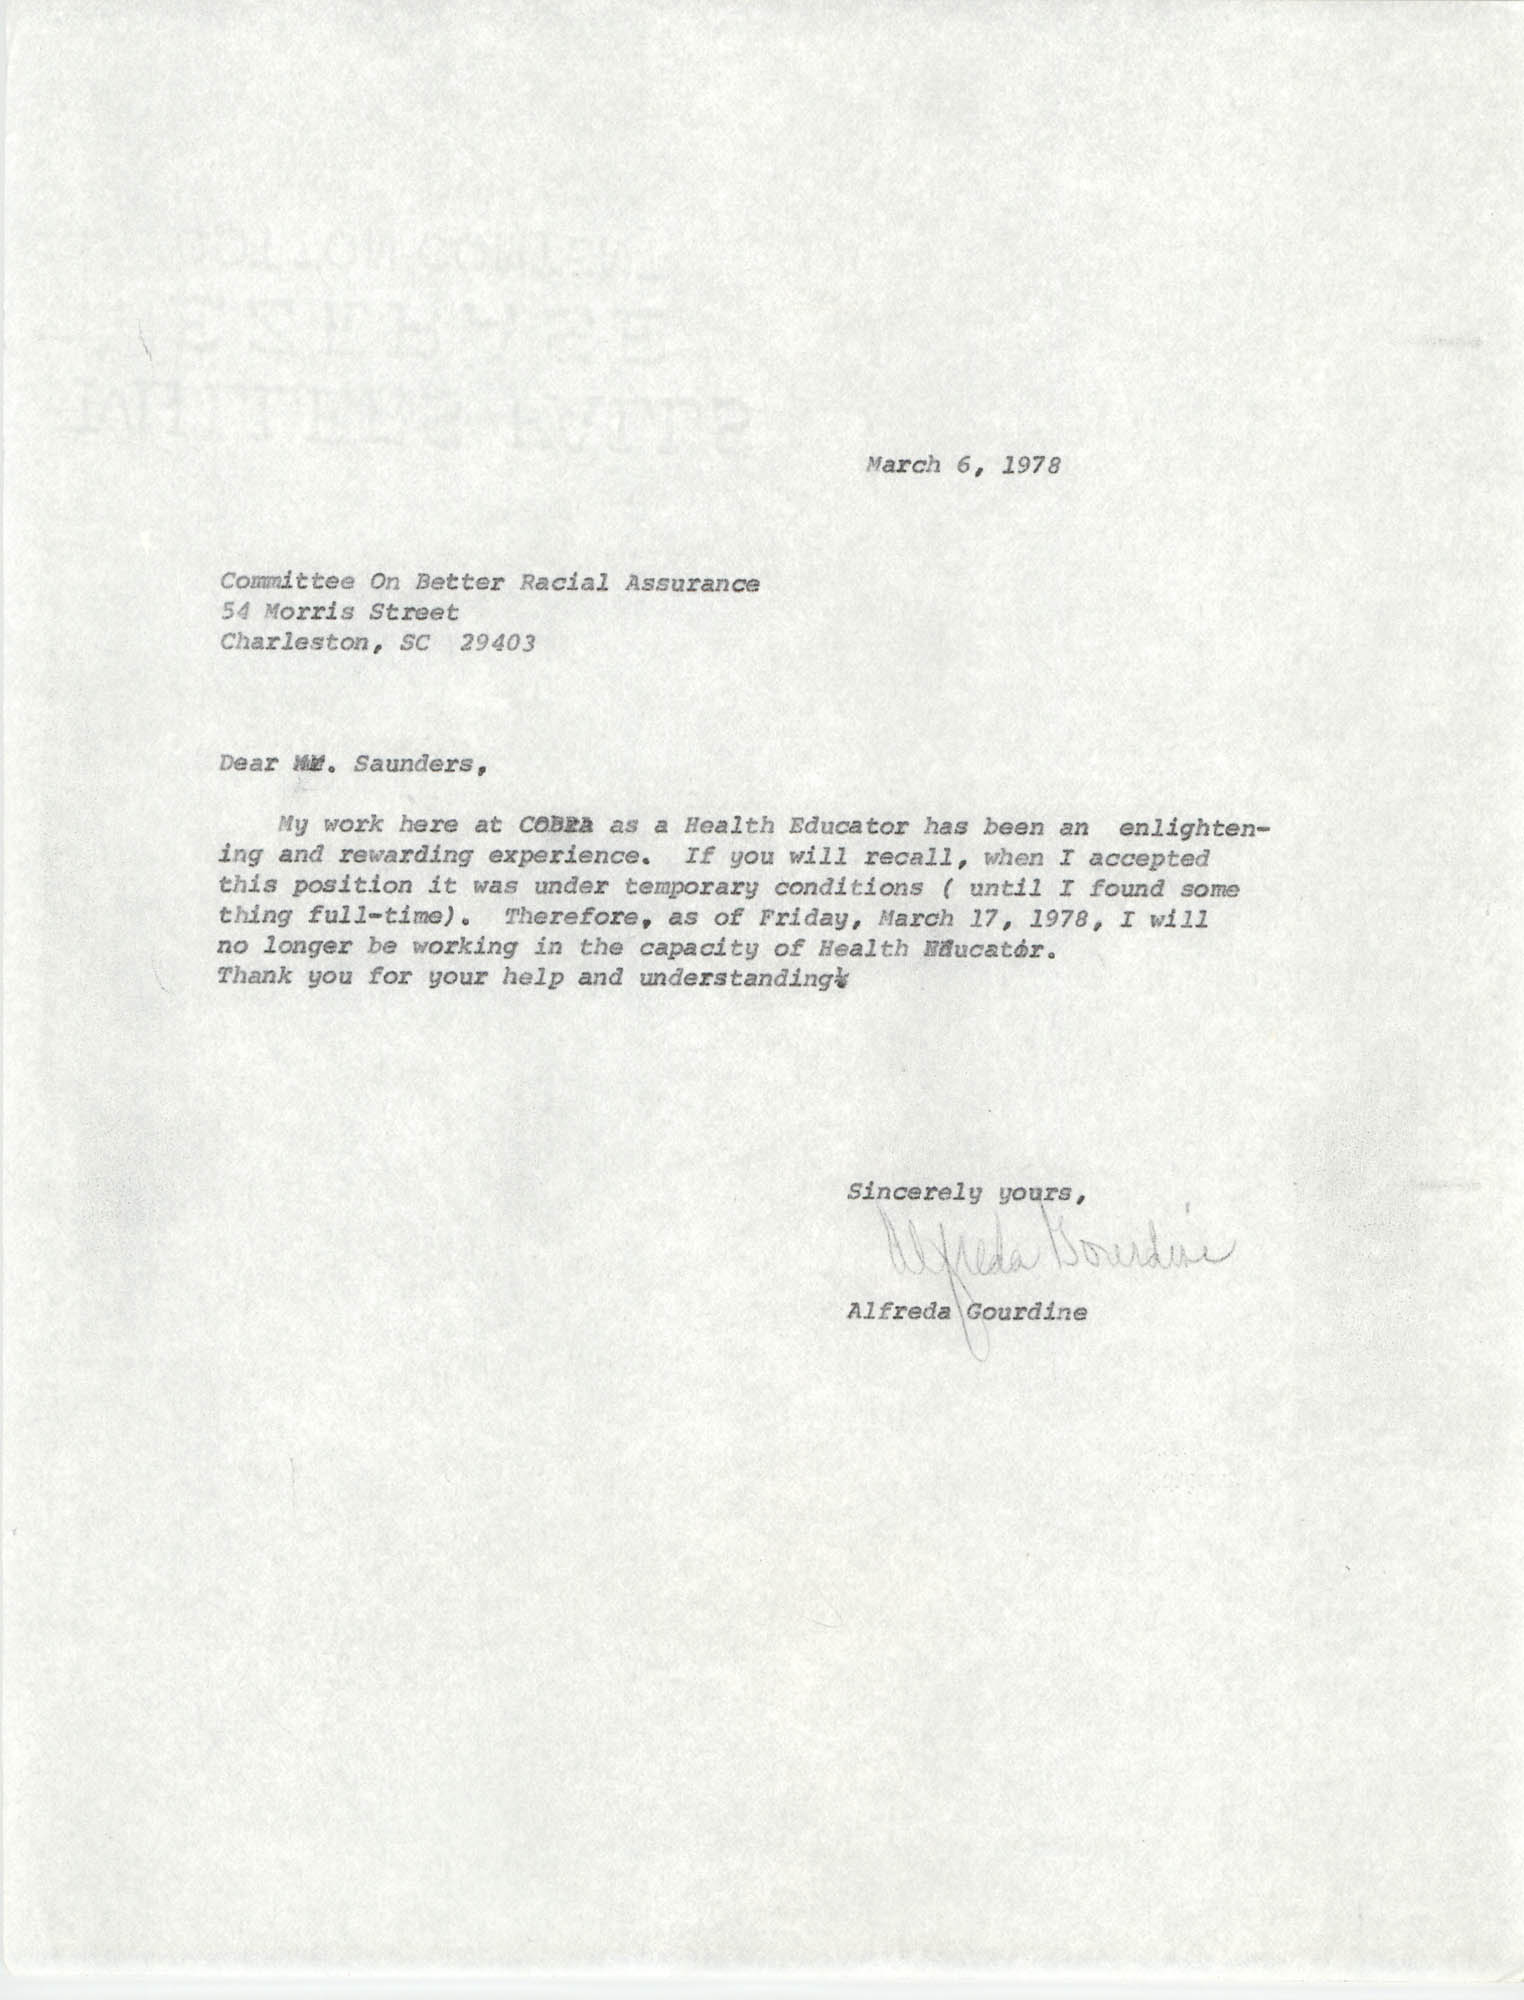 Letter from Alfreda Gourdine to William Saunders, March 6, 1978